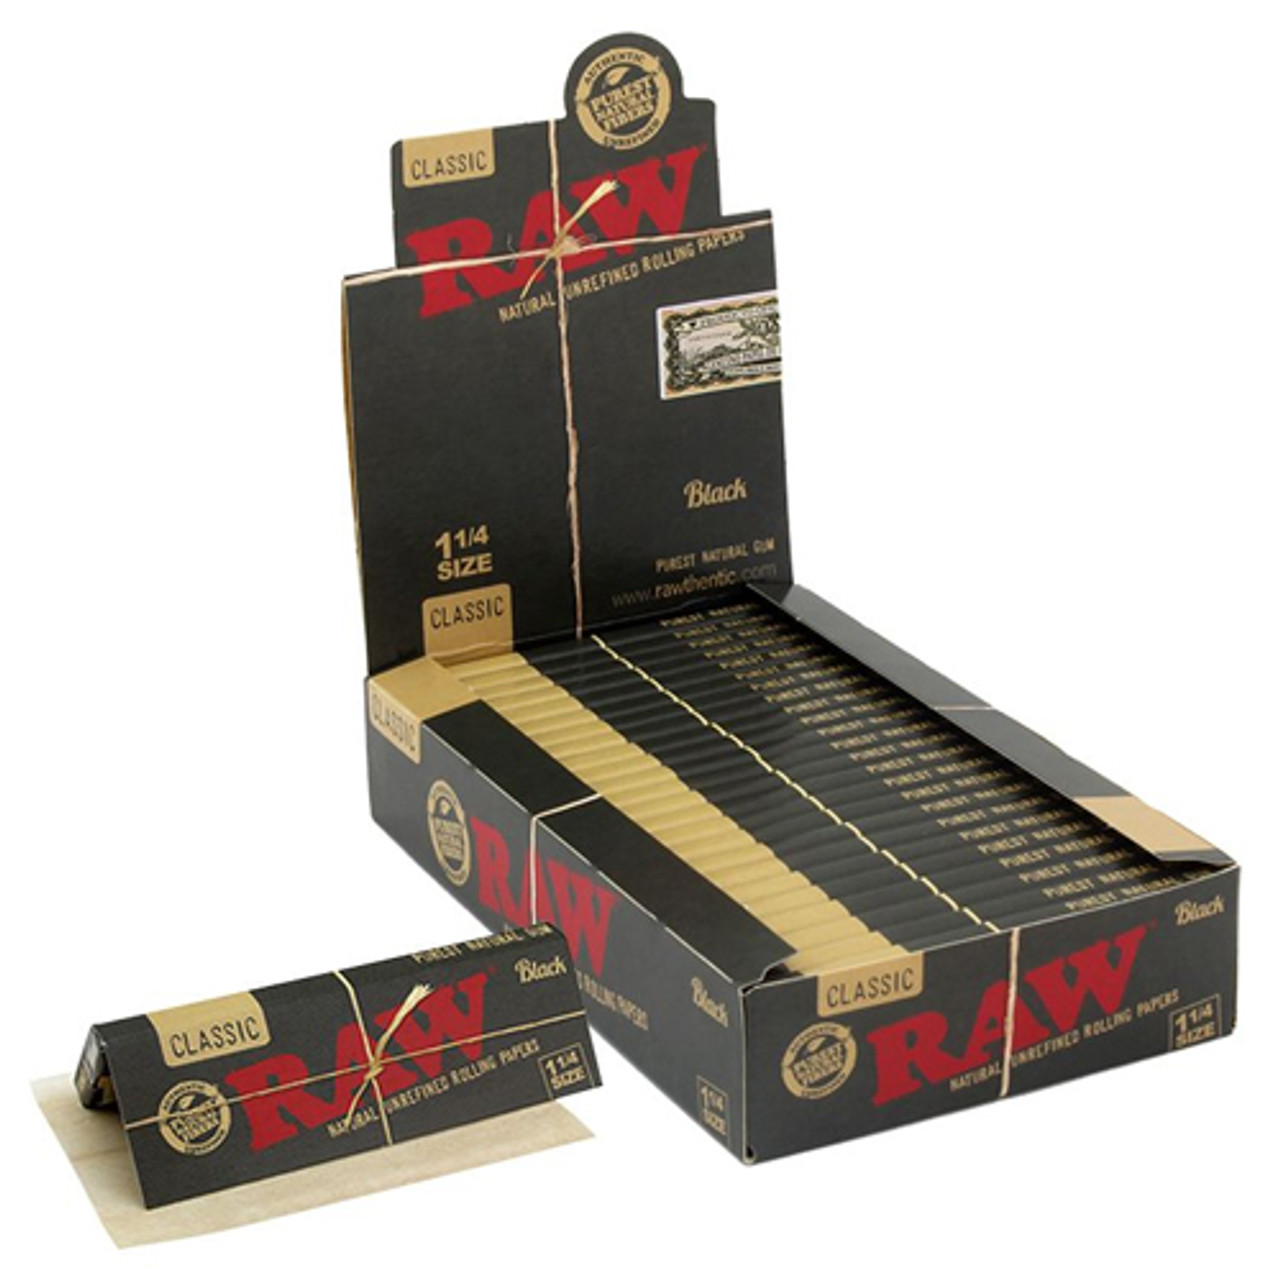 Raw Classic Black Rolling Papers 1 1/4 (Display of 24)